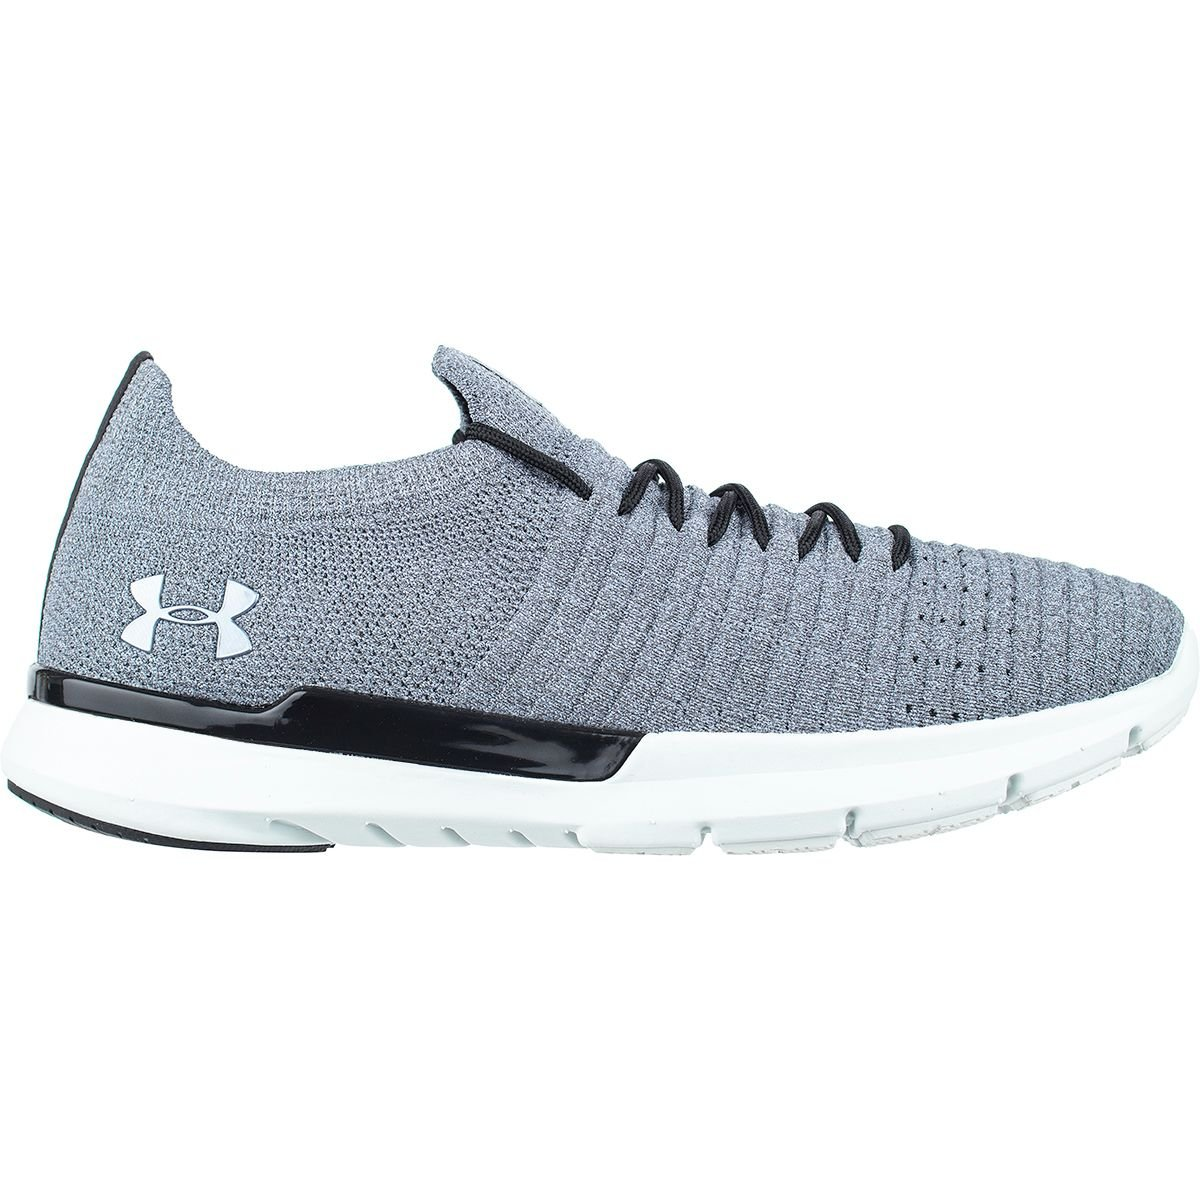 Under Armour Women's Slingwrap Phase Cross-Country Running Shoe B07FMJQCHH 6.5 B(M) US|Washed Blue/Elemental/Washed Blue